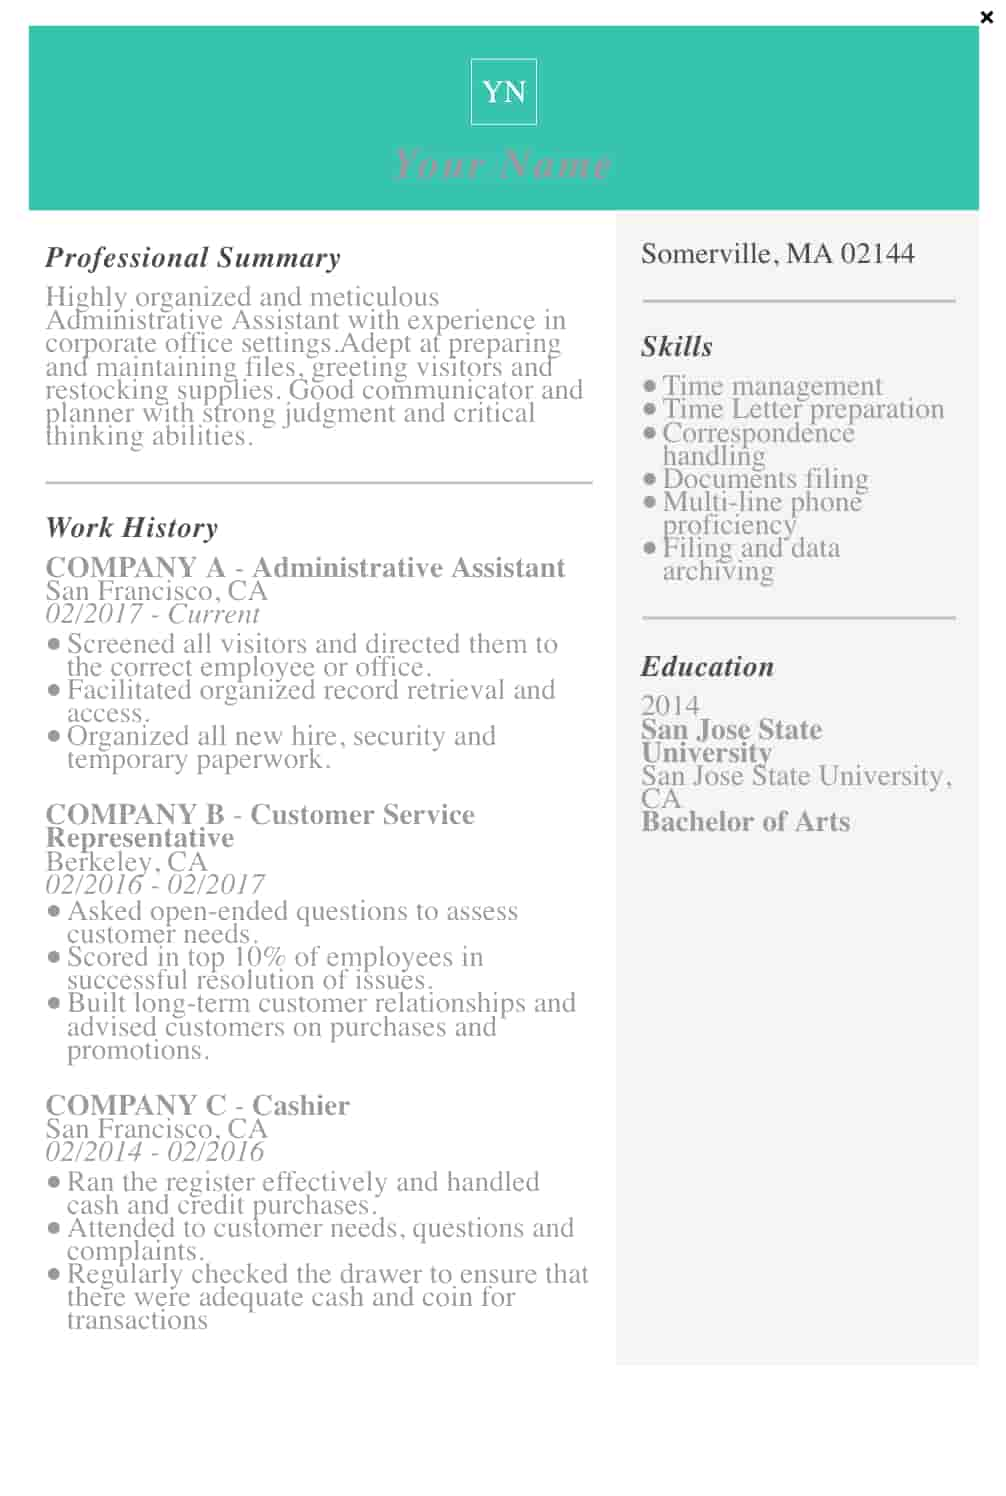 free resume templates for microsoft word to make your own livecareer screen shot at pm Resume Livecareer Free Resume Templates